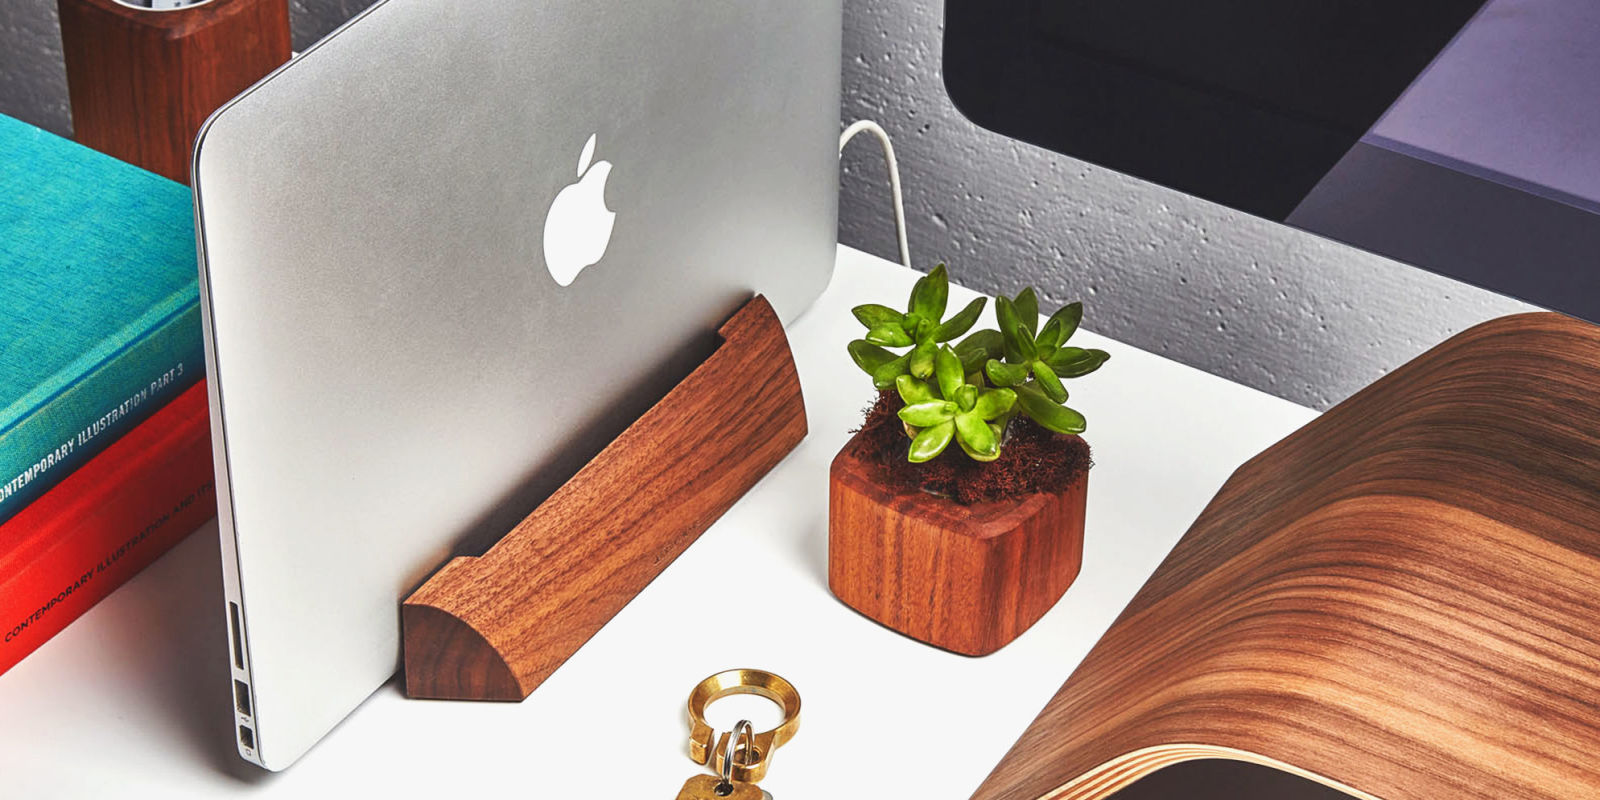 15 Best Macbook Stands In 2018 Laptop Stands Amp Docking Stations For Your Macbook